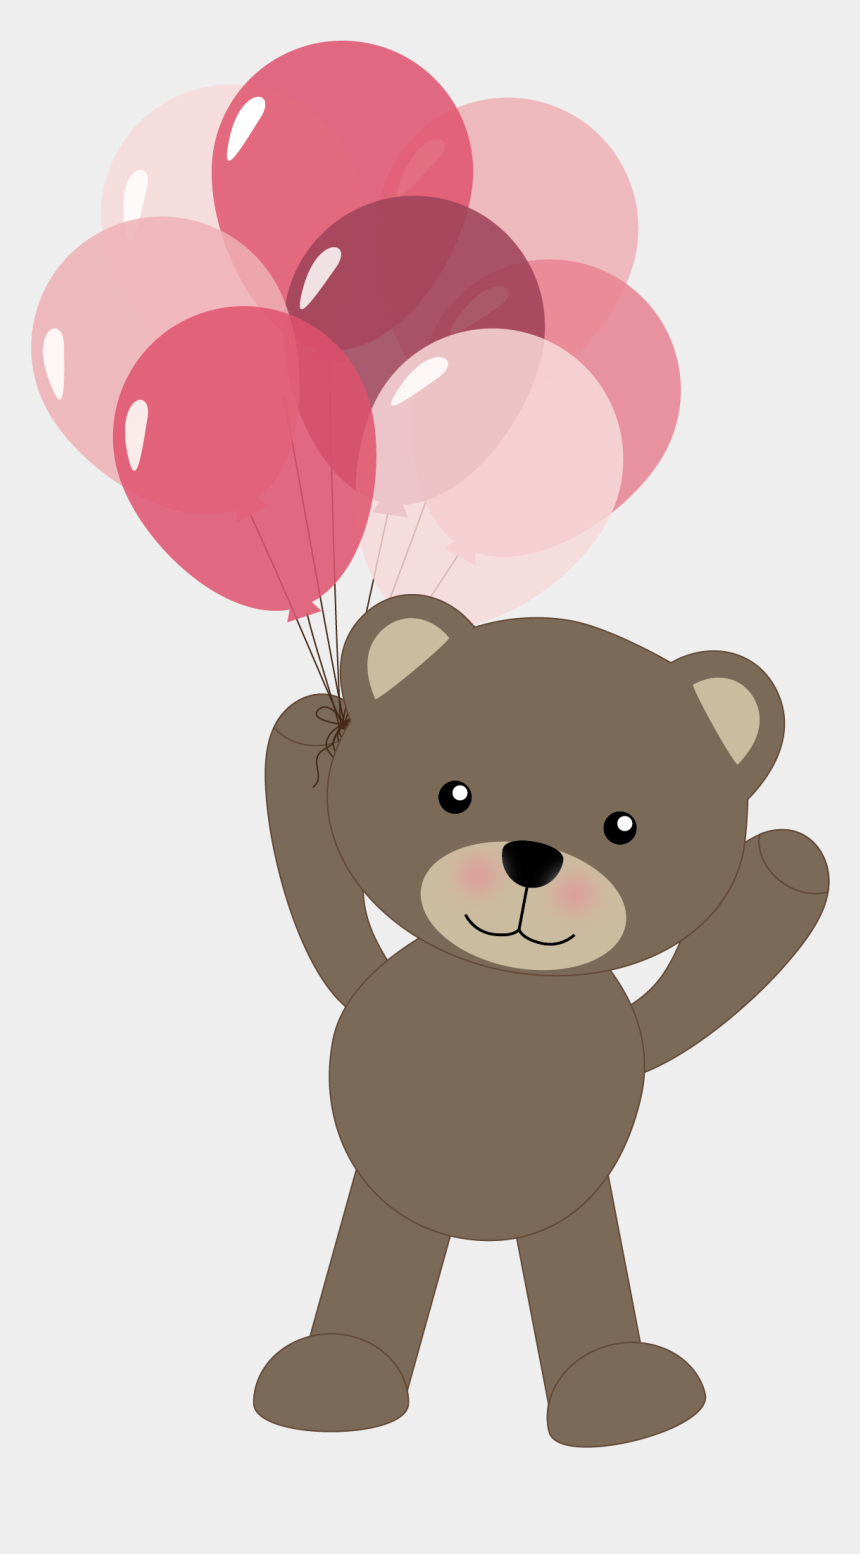 little brother clipart, Cartoons - B *✿* Clipart Oso, Cute Clipart, Urso Bear, Teddy - Teddy Bear Clipart With Balloons